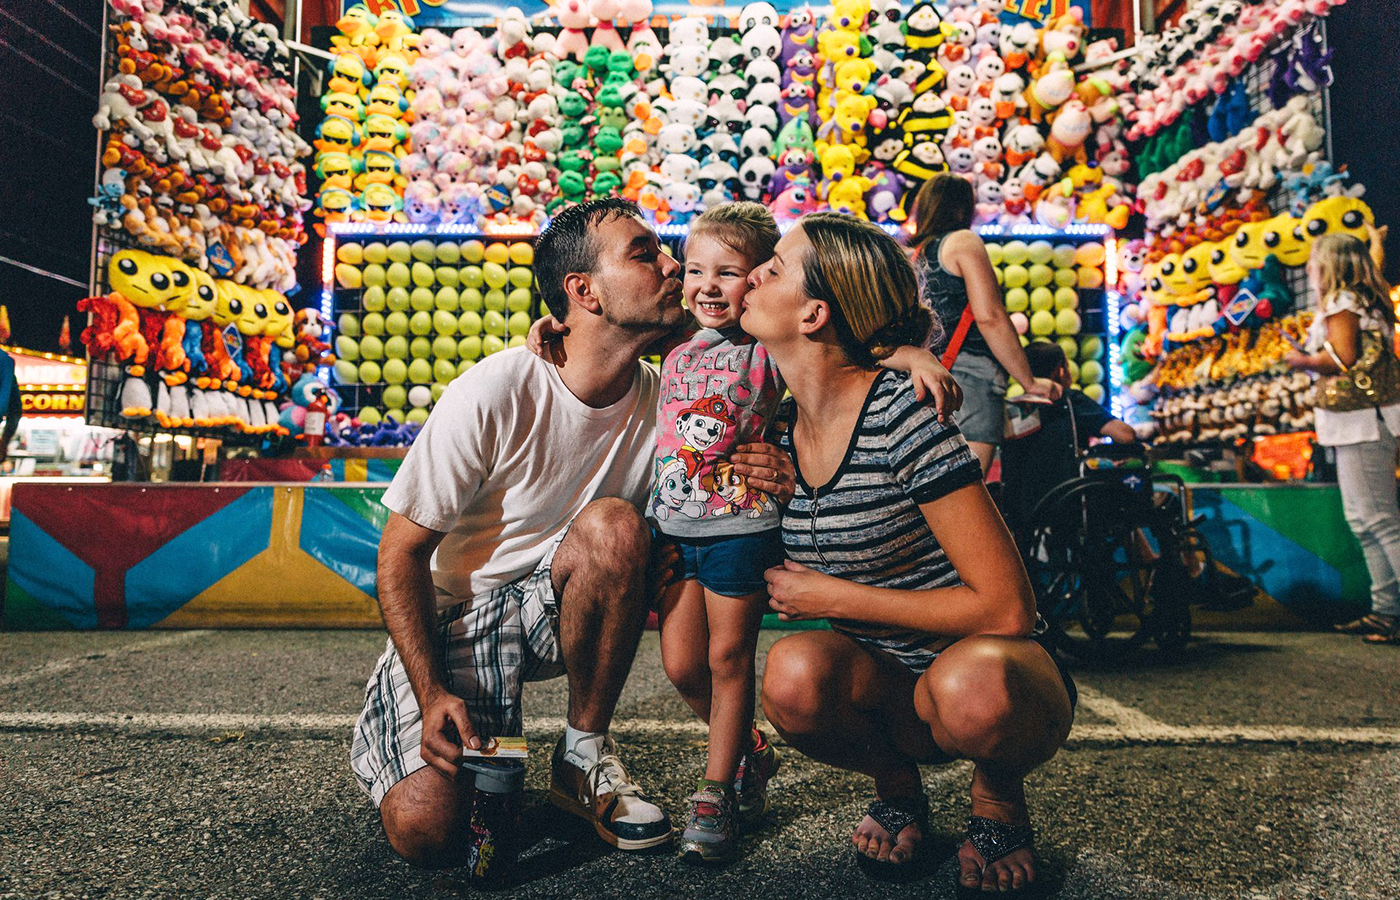 County Fairs = Family FUN in Middle Tennessee